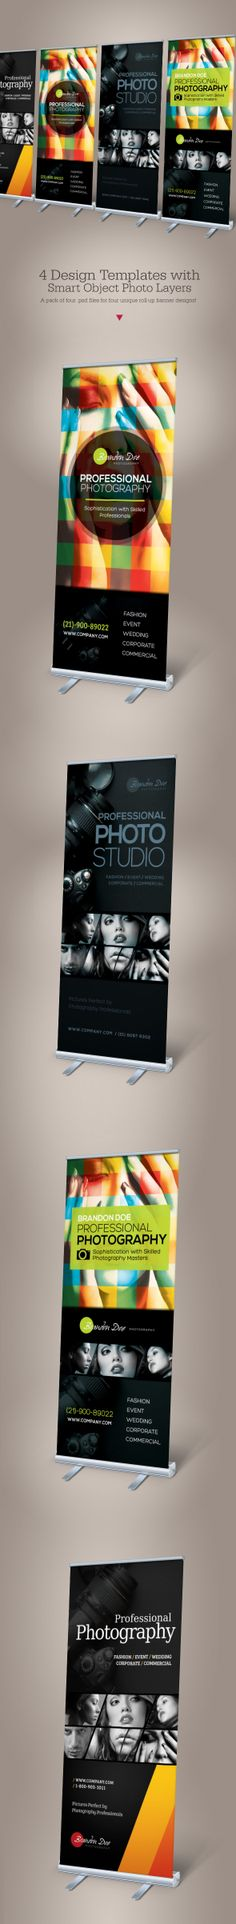 Photography Roll-up Banners | repinned by www.drukwerkdeal.nl